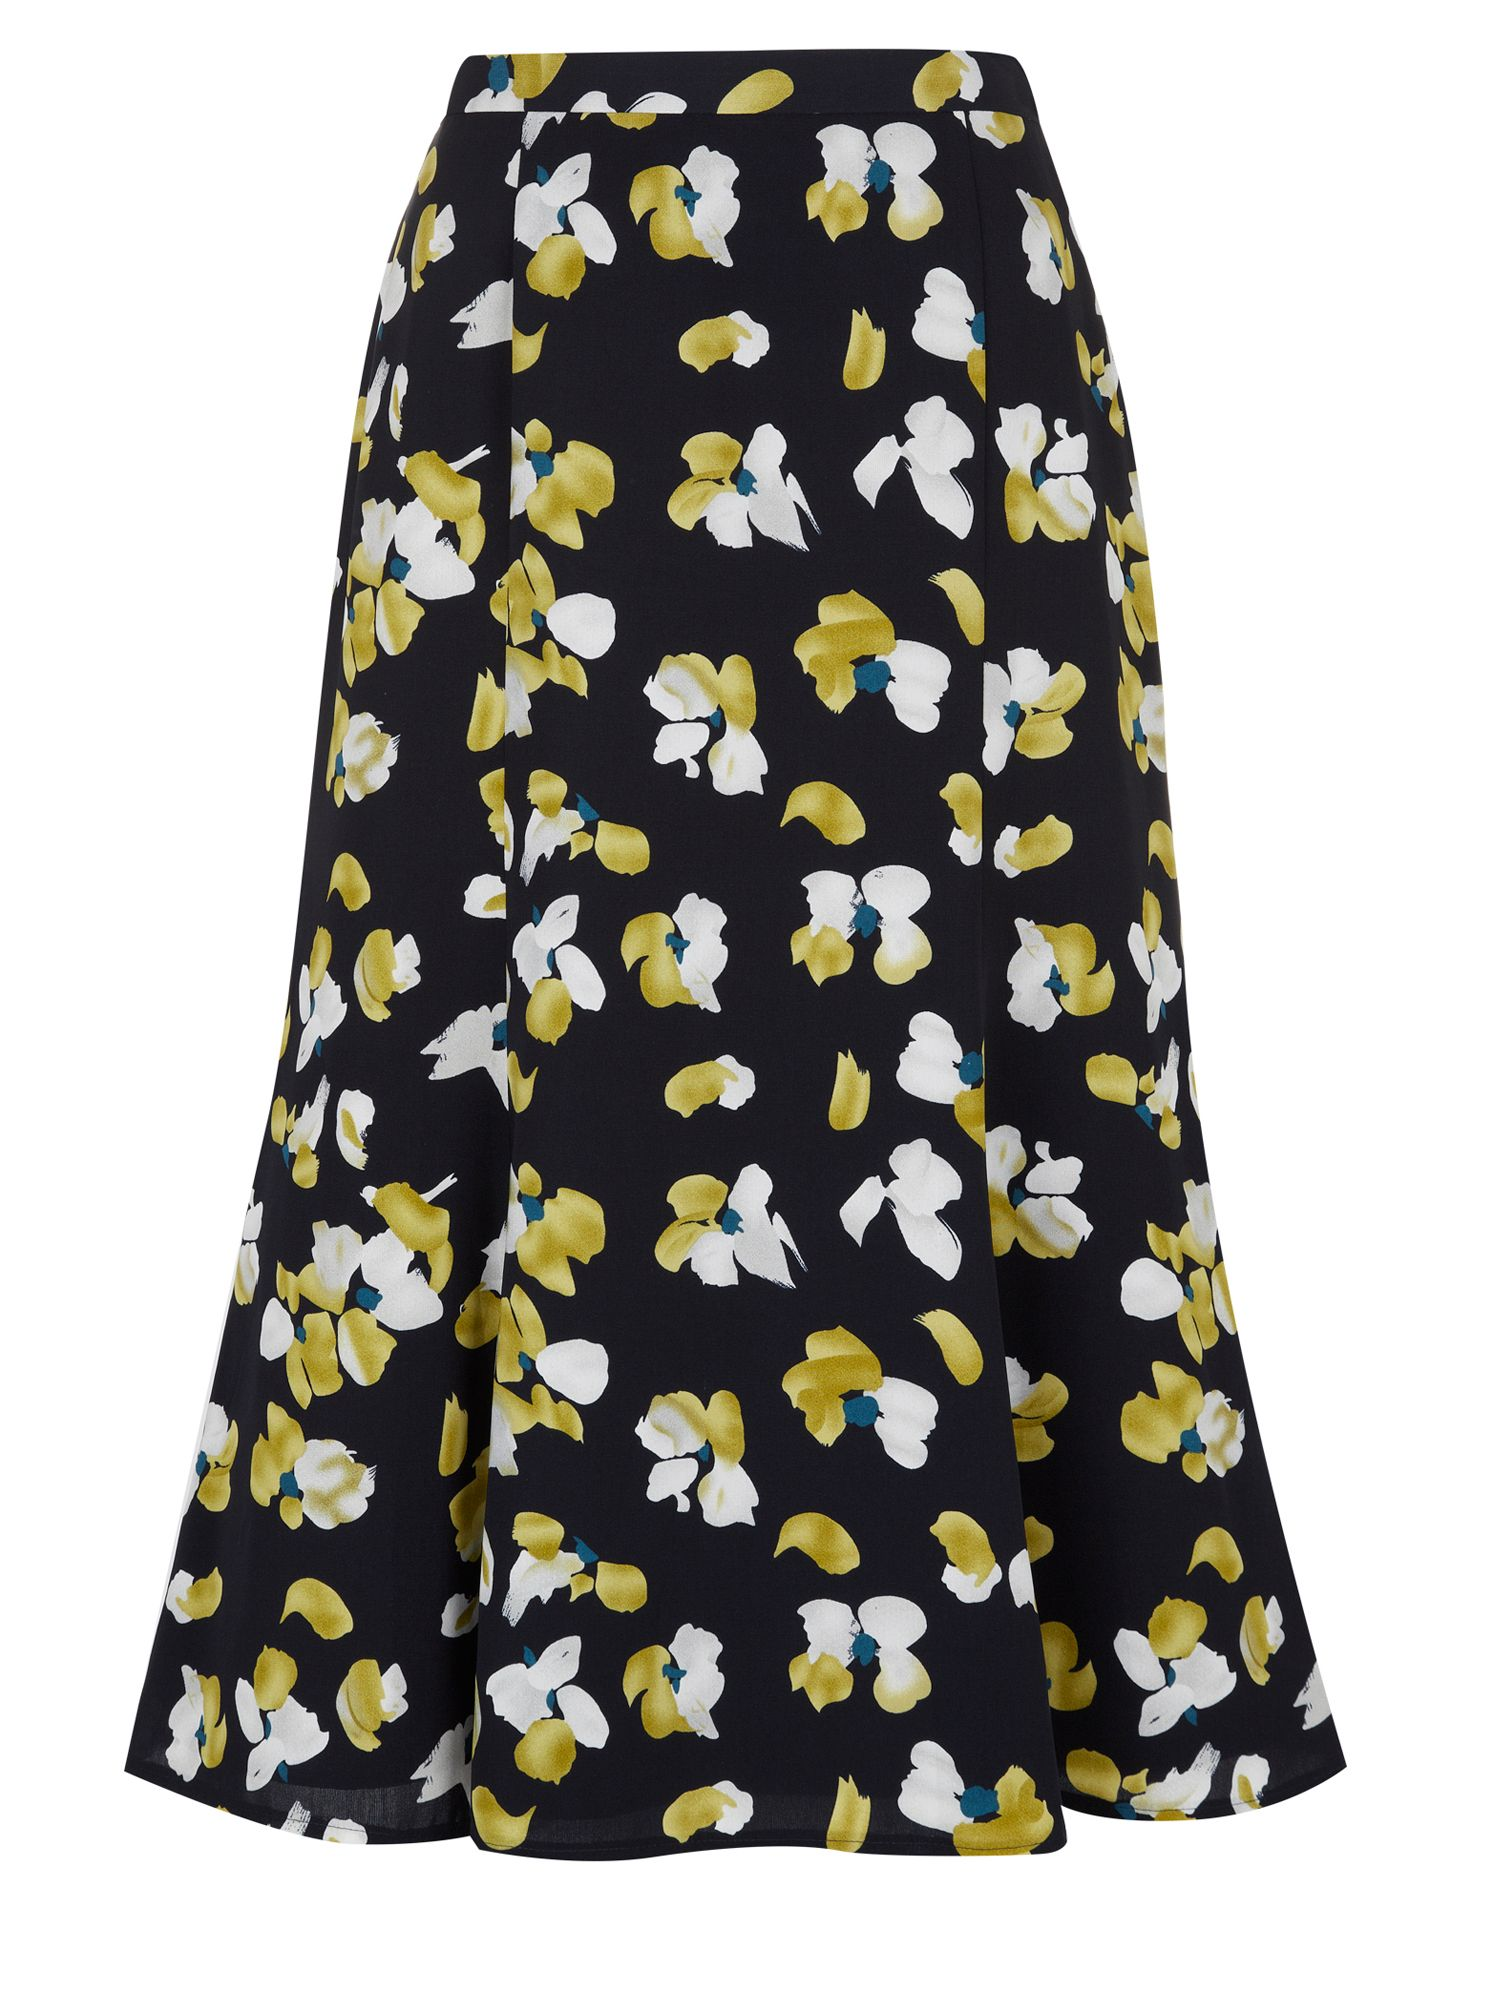 Mayfair shorter length fit & flare skirt